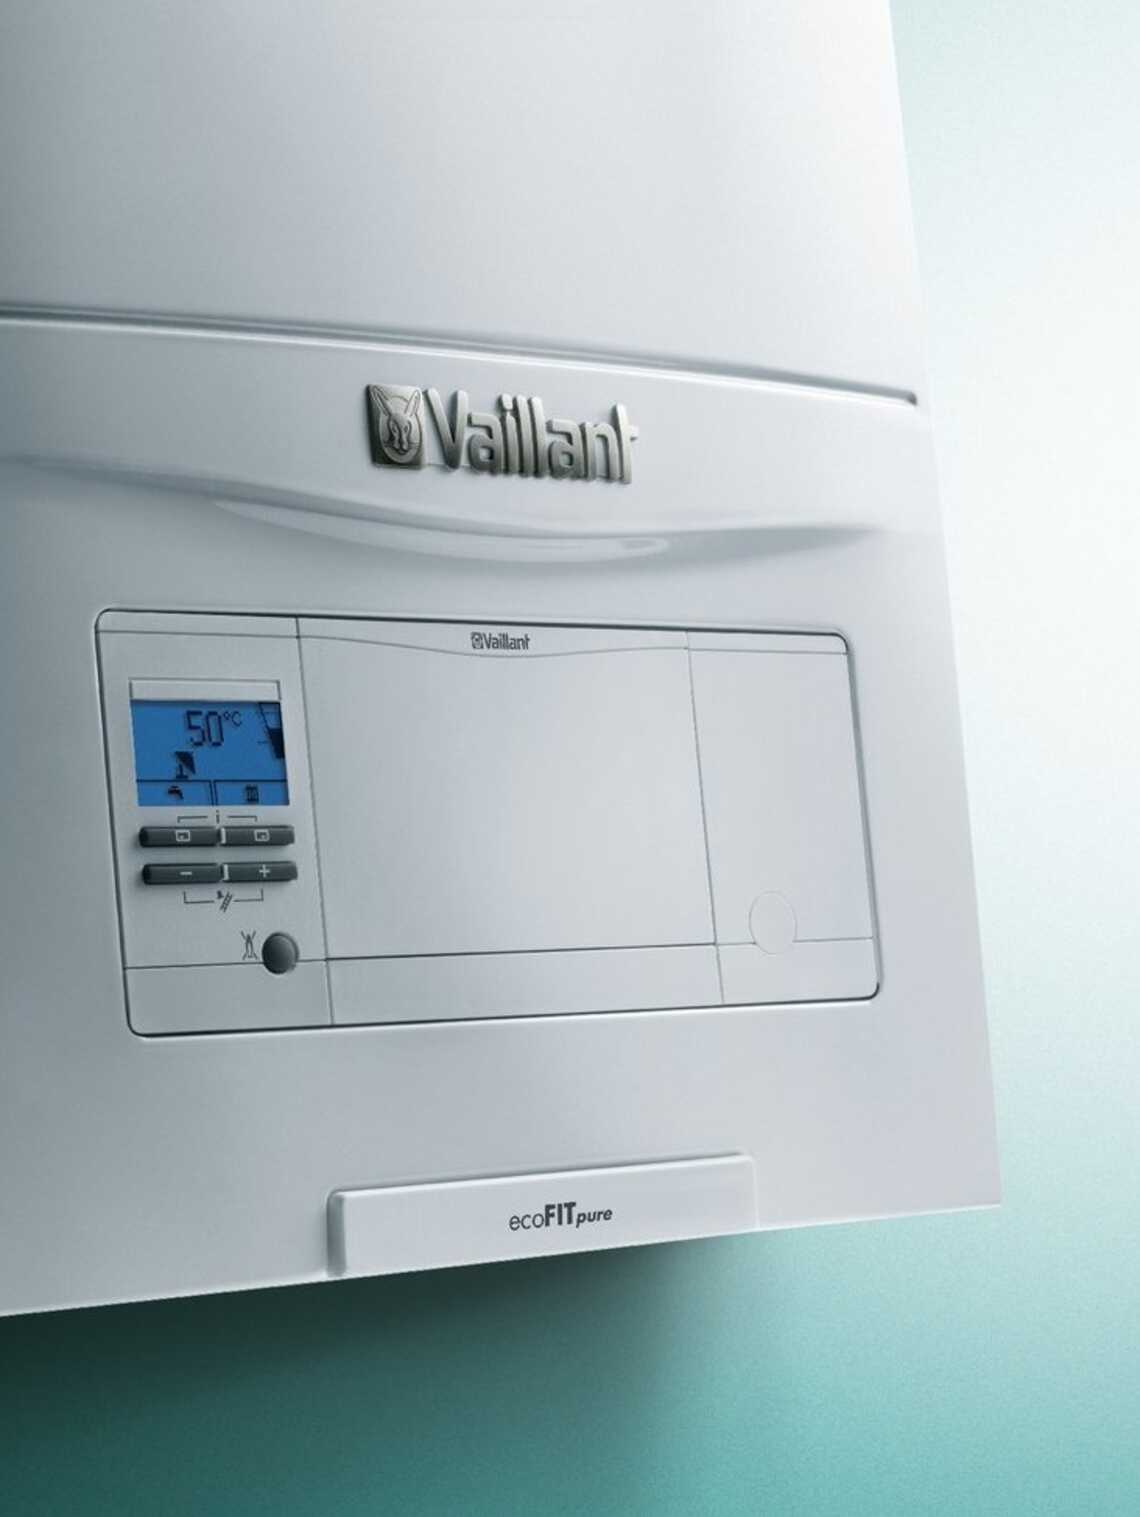 Closein Boiler Ecofit Pure Open Vent Boiler Vaillant Uk